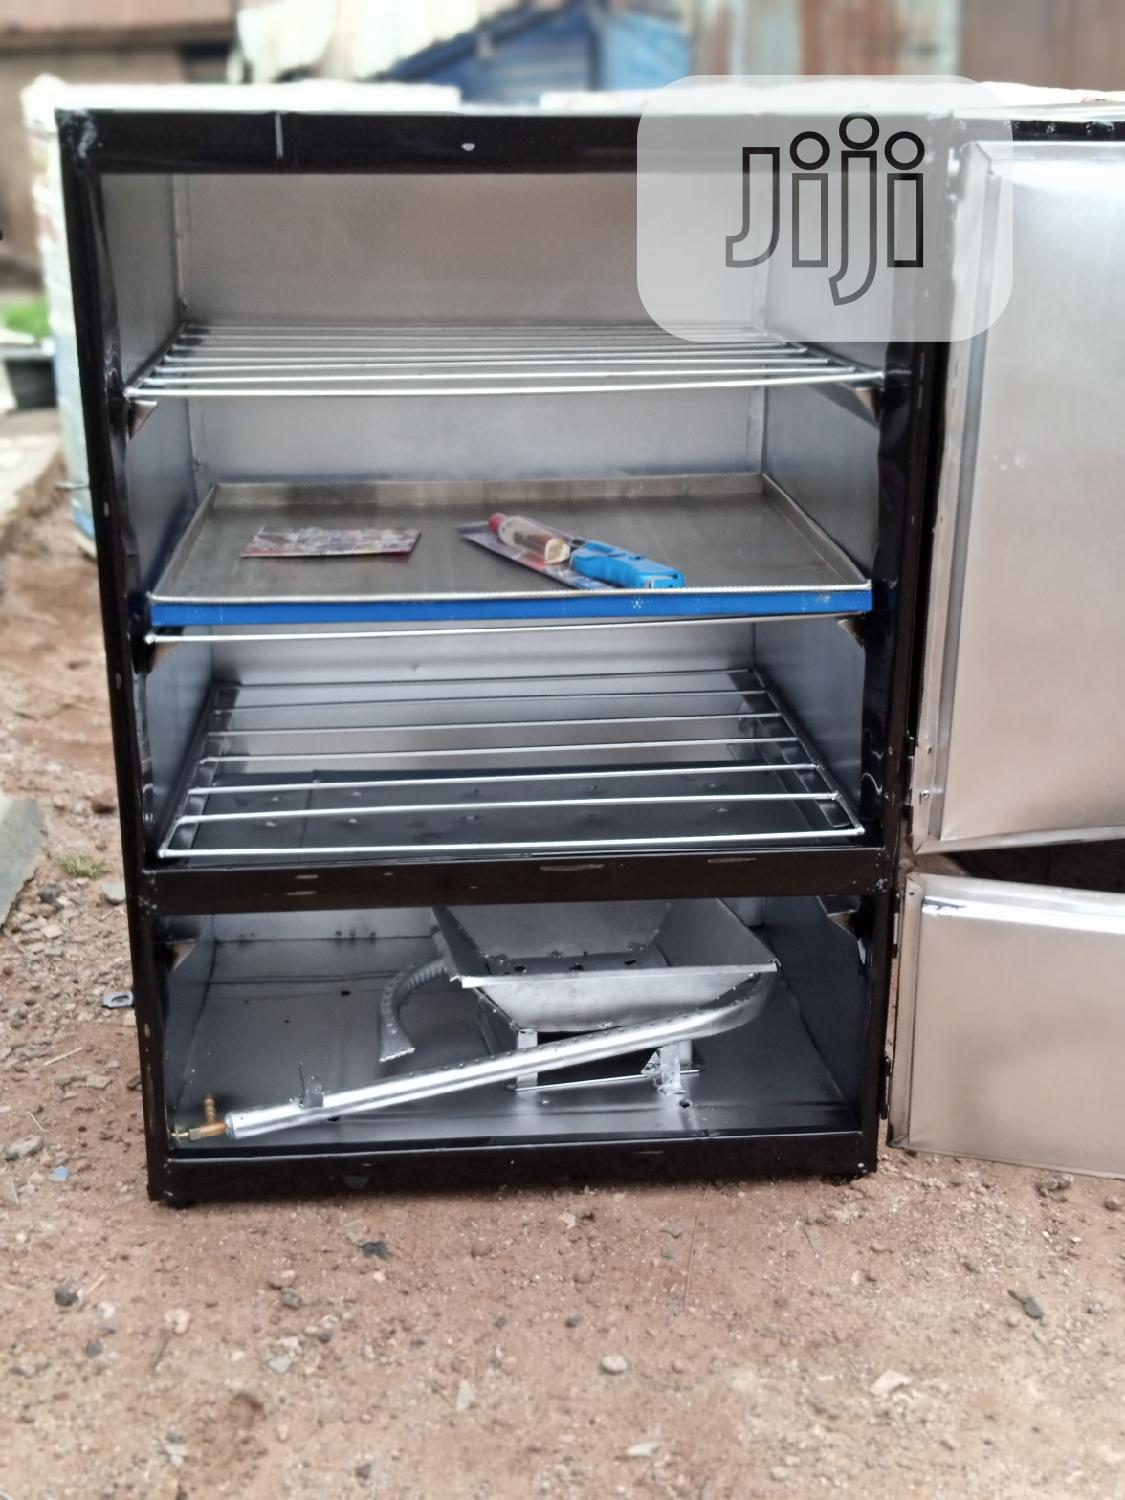 Easytech Charcoal And Gas Oven Enterprises | Restaurant & Catering Equipment for sale in Ibadan, Oyo State, Nigeria